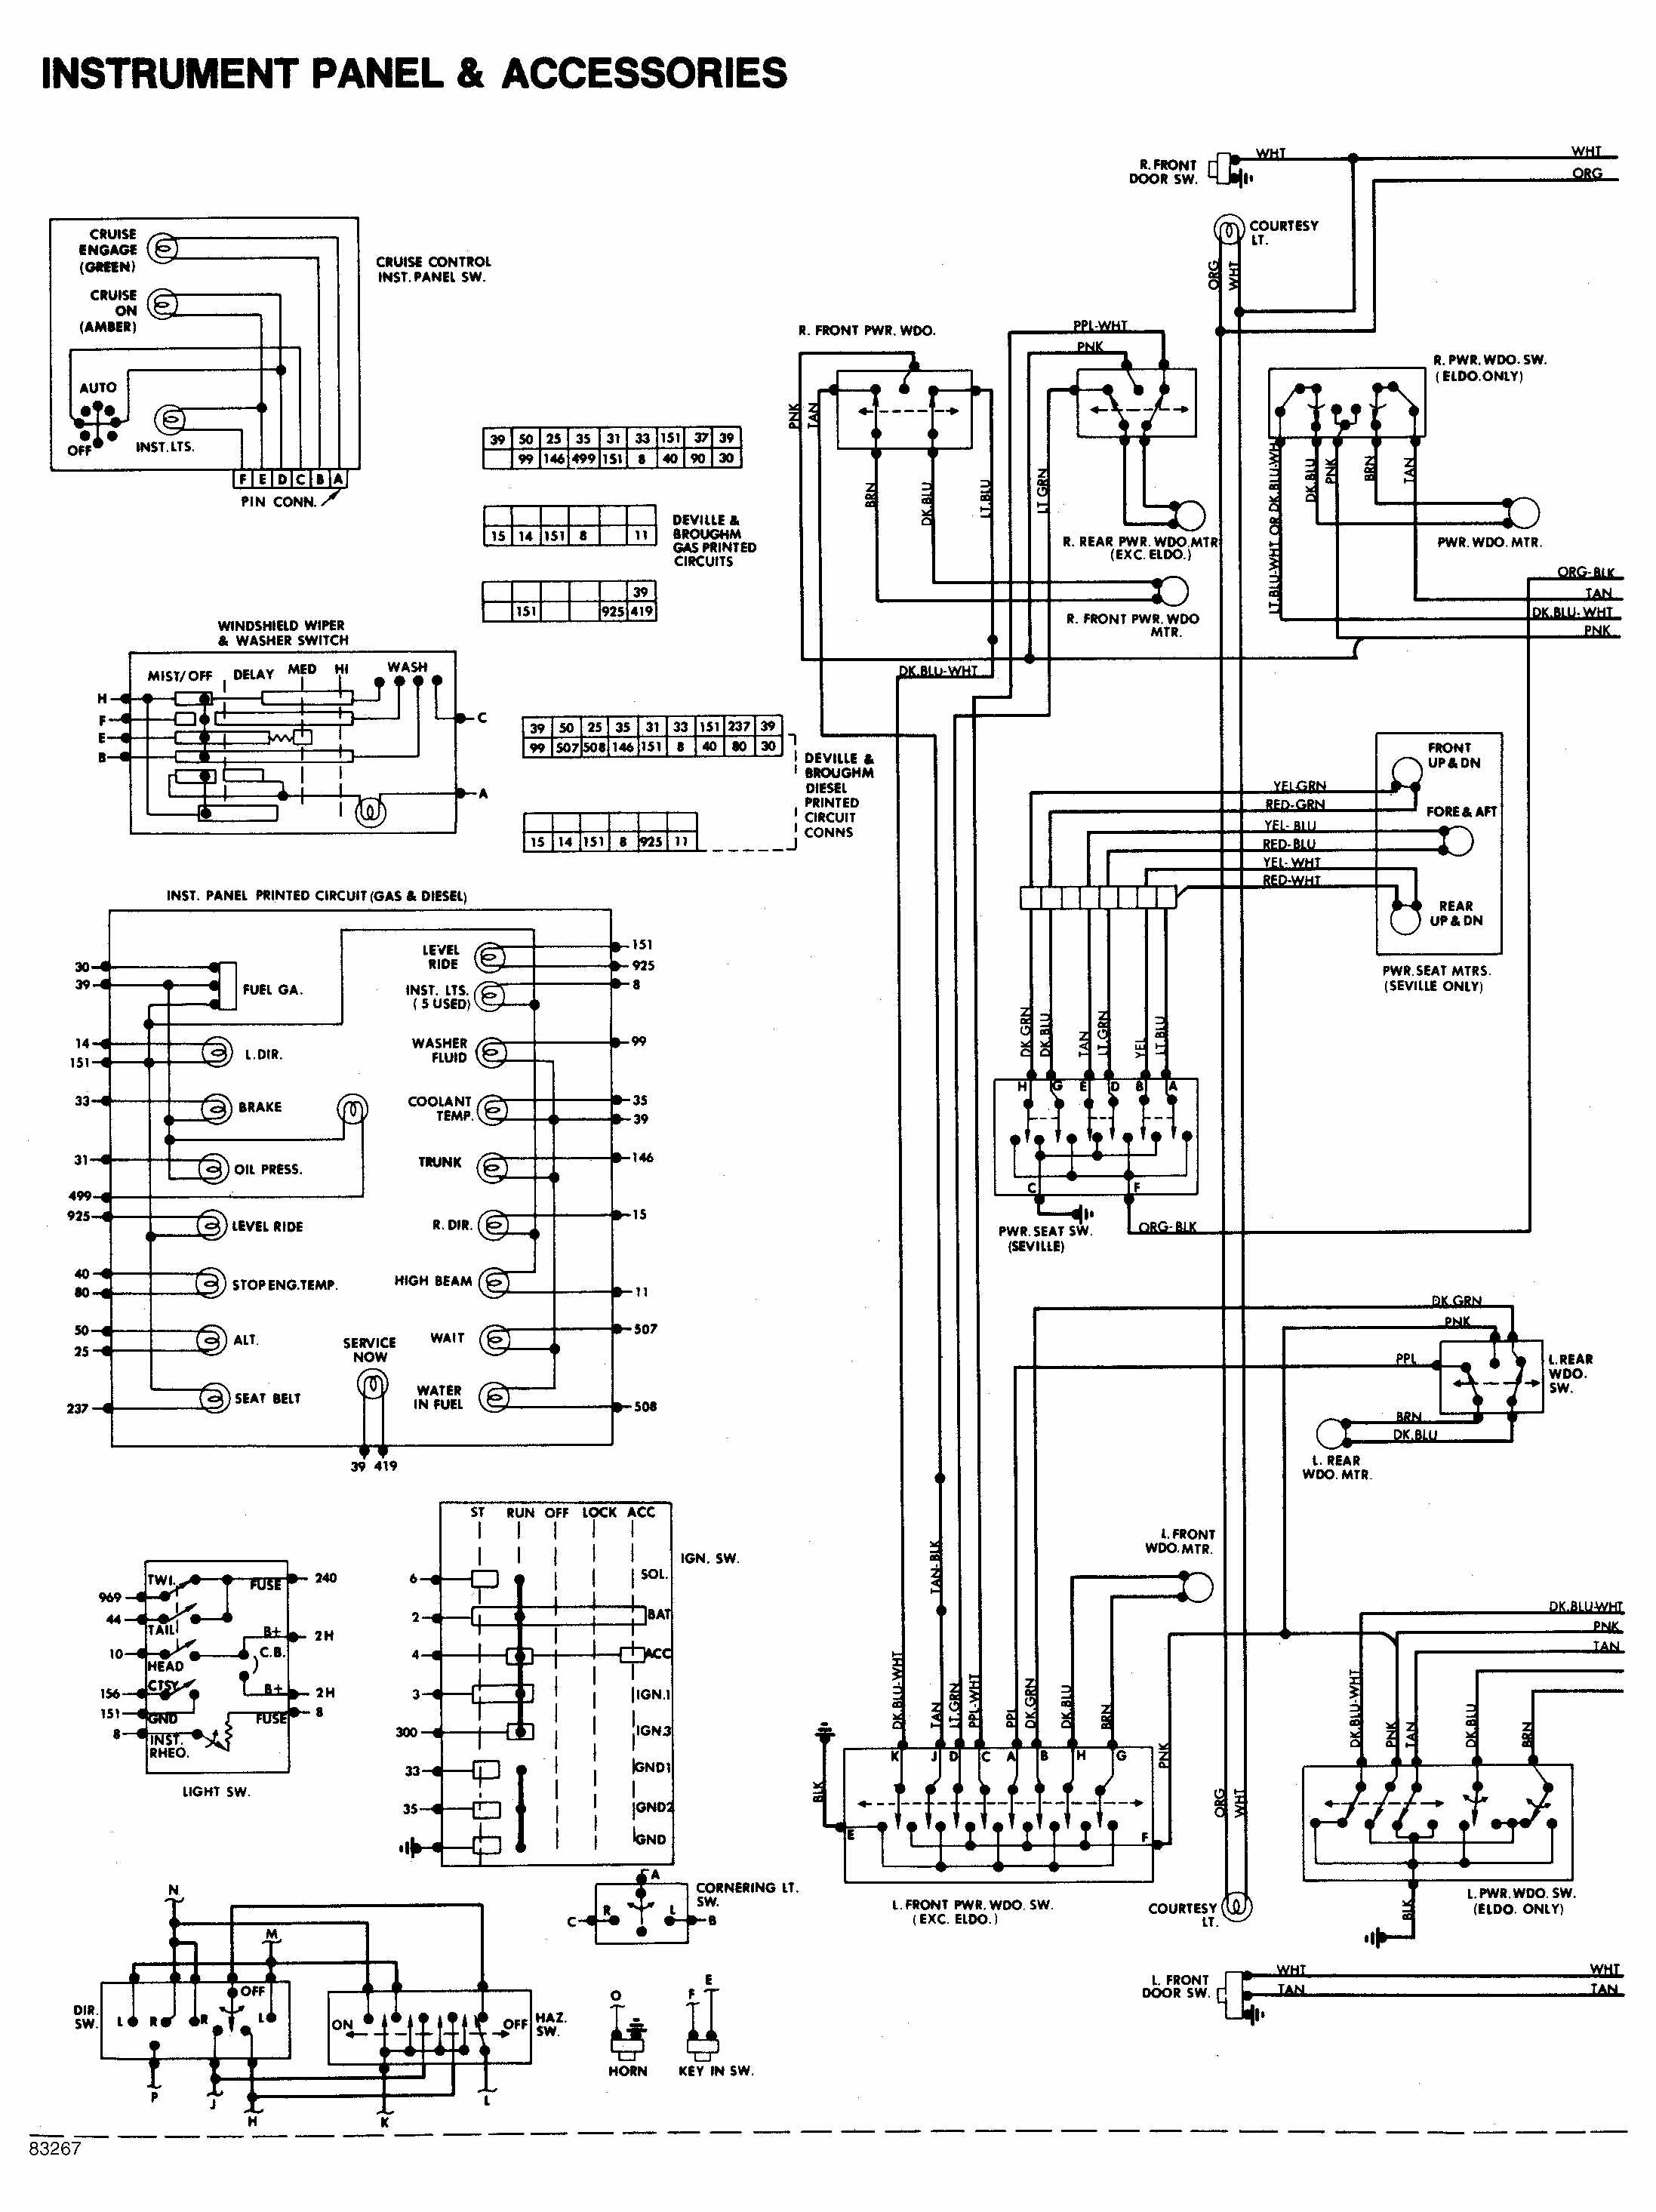 [DIAGRAM_5FD]  7D7775 94 Lincoln Continental 3 8l Wiring Diagram | Wiring Library | 94 Lincoln Continental 3 8l Wiring Diagram |  | Wiring Library